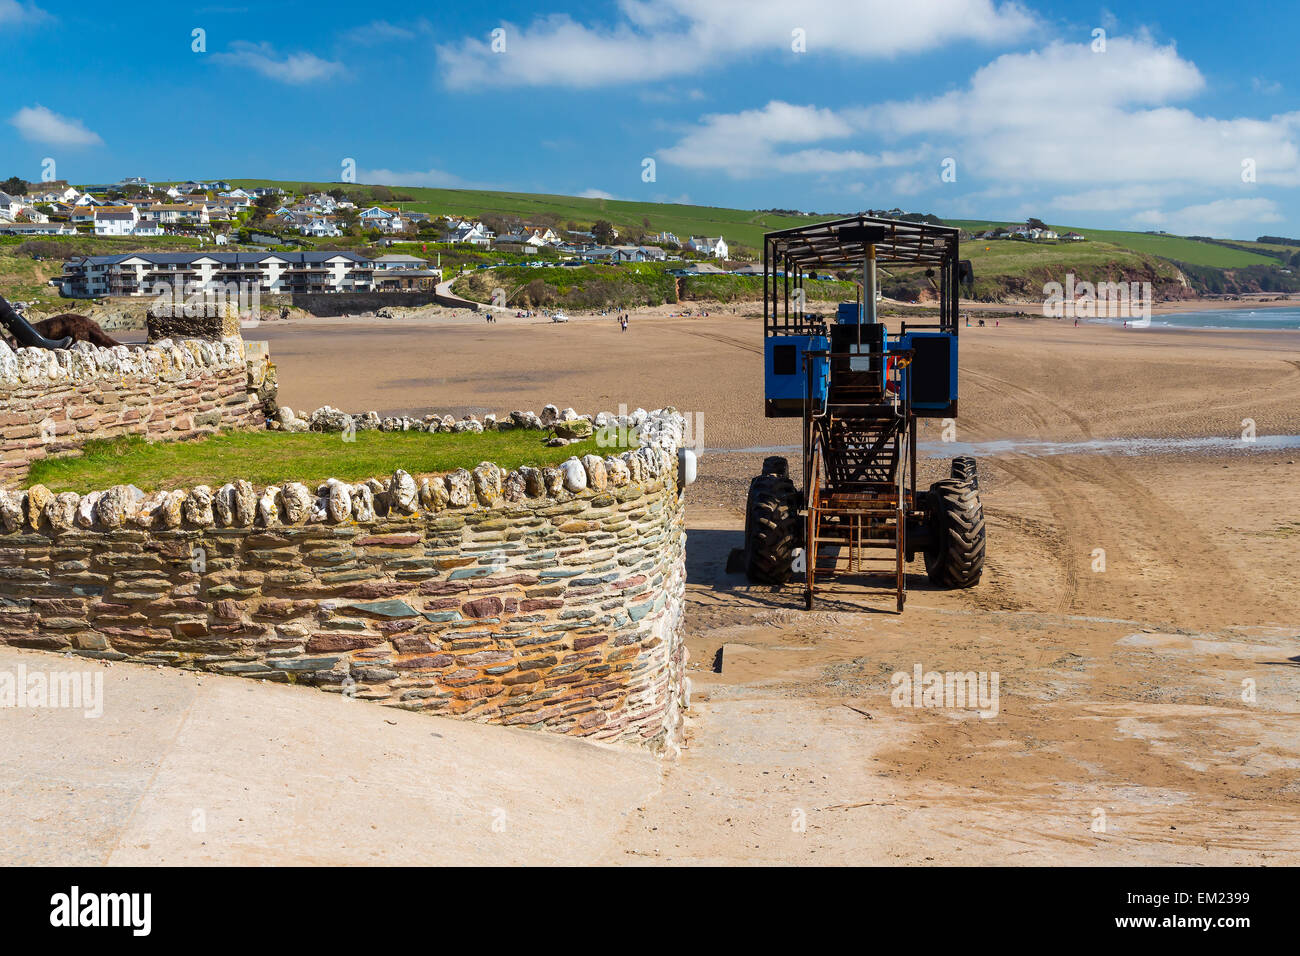 Sea tractor that links Burgh Island to Bigbury-on-Sea Devon England UK Europe - Stock Image